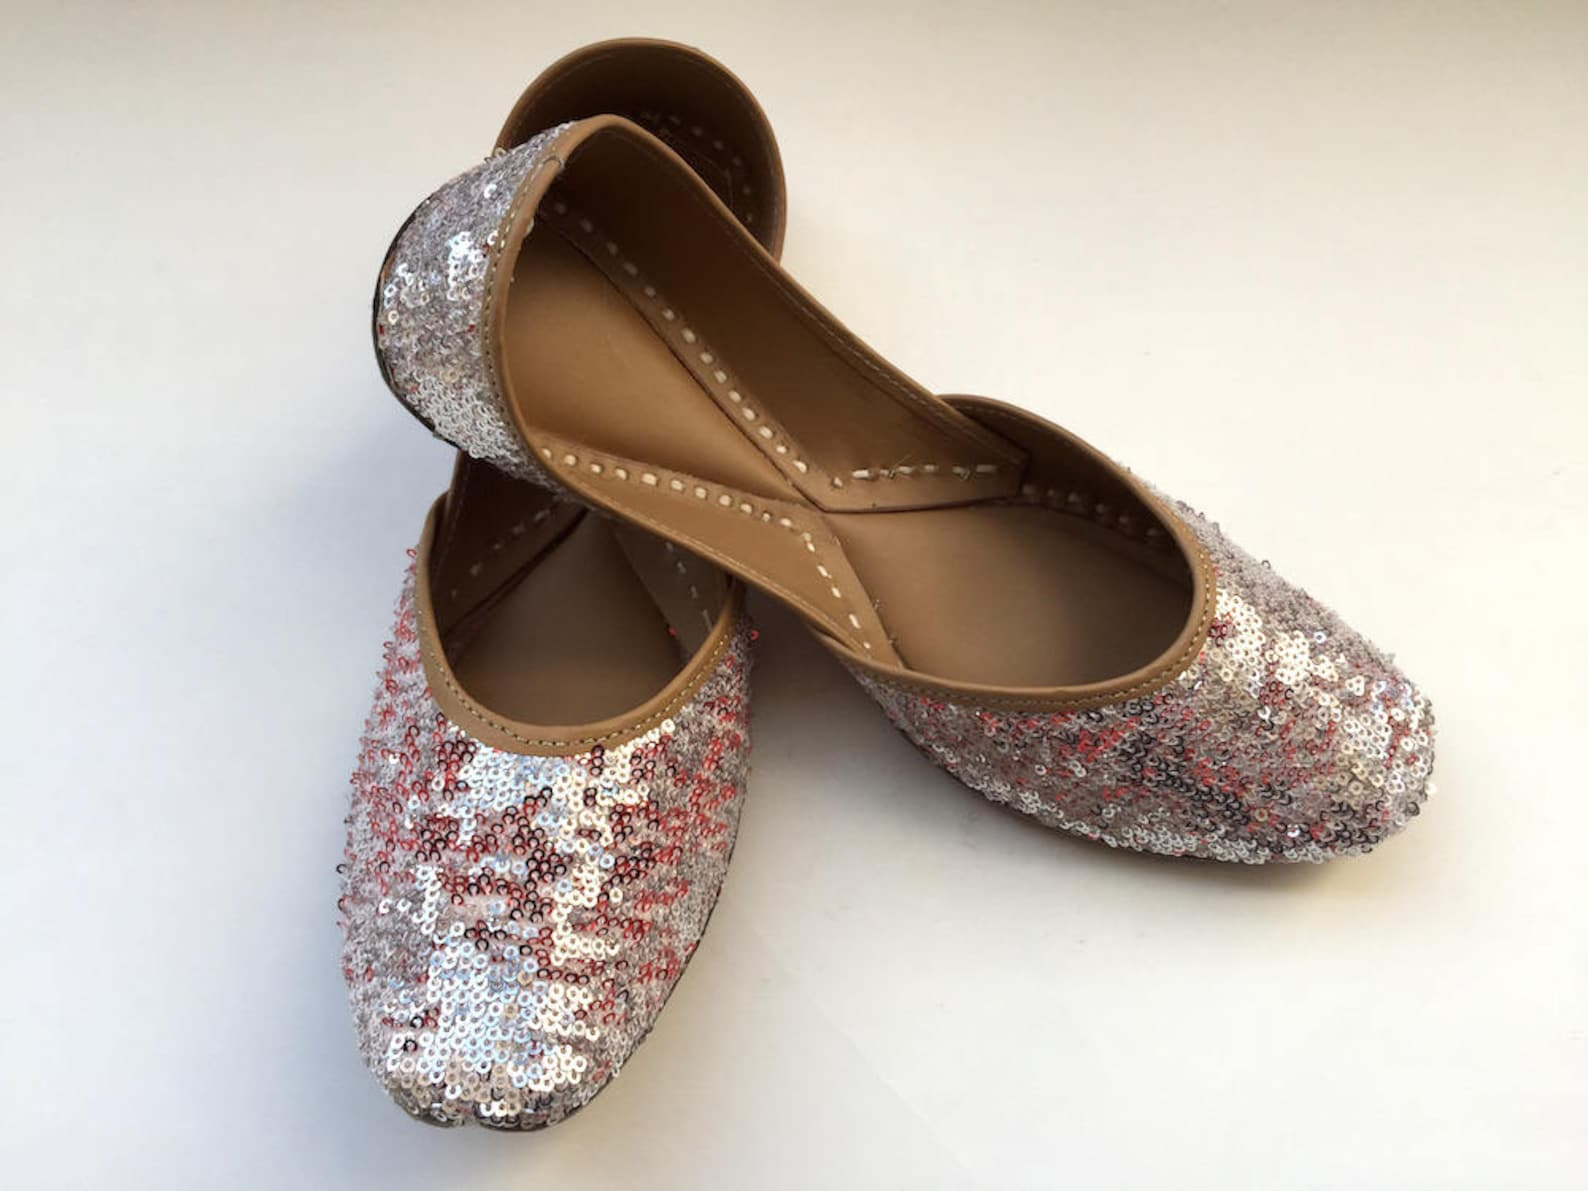 women silver sequins ballet flats, red sequins shoes from enhara, wedding shoes, women shoes, bridal ballet flats, sequins glitt